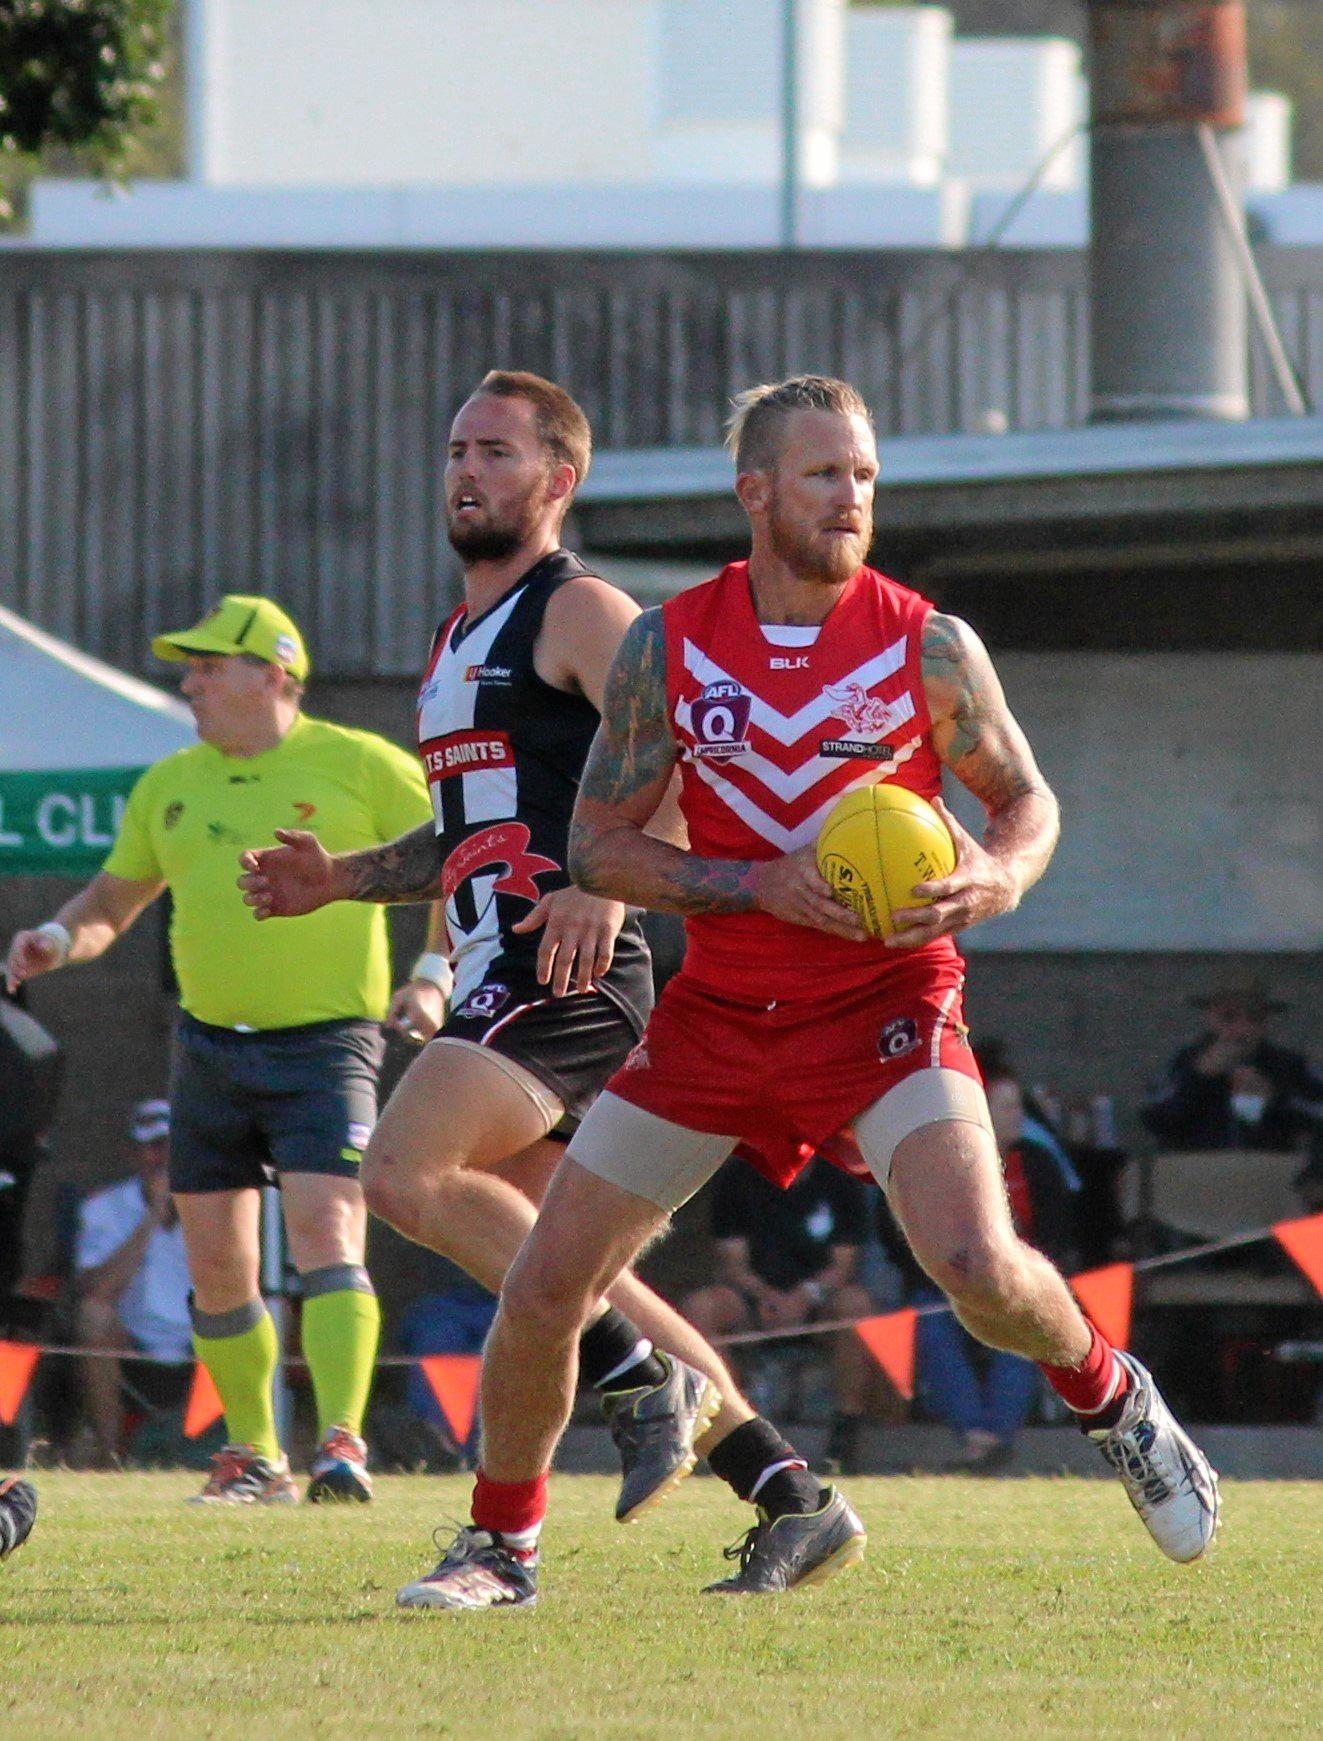 BIG GAME PLAYER, WES HAWKE LOVES PLAYING THE SAINTS, AND WILL BE PRIMED FOR THIS ONE.